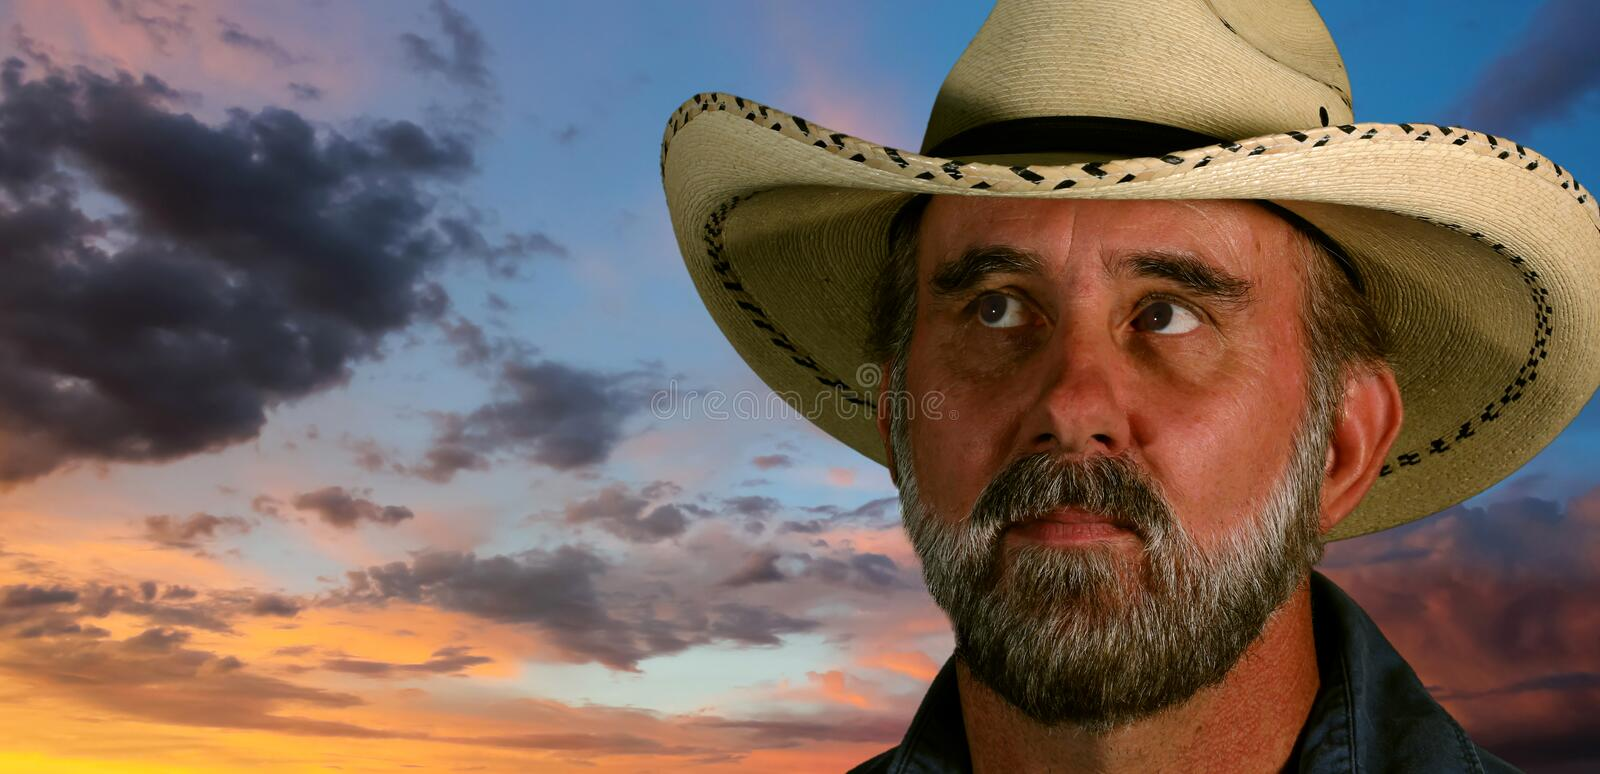 A Man in a White Cowboy Hat at Sunset. A Man with Brown Eyes and a Gray Beard in a White Straw Cowboy Hat at Sunset stock image